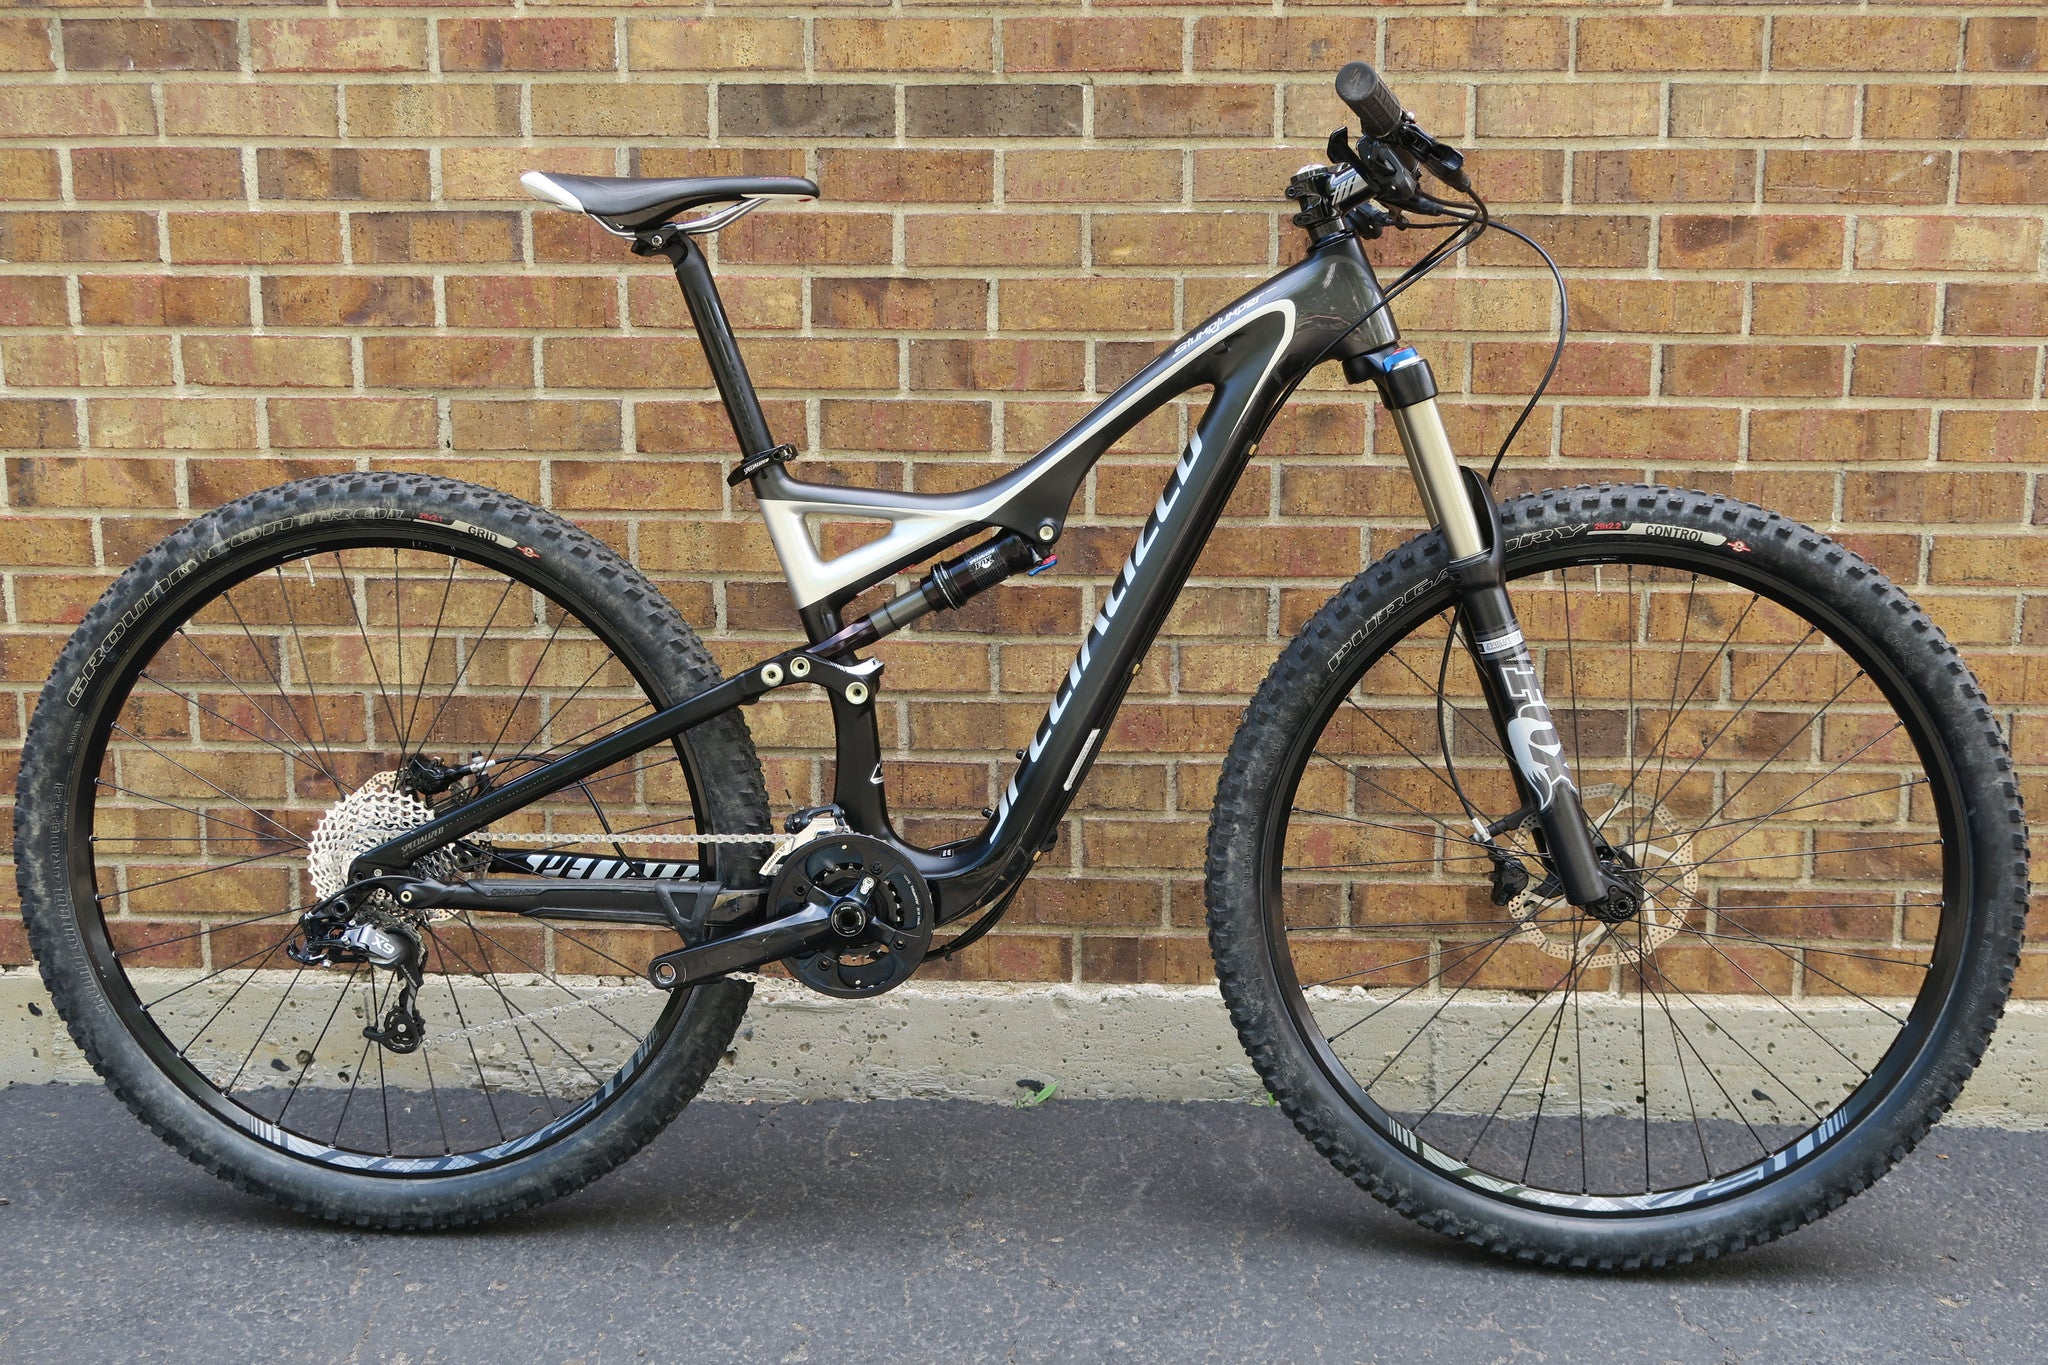 2012 SPECIALIZED STUMPJUMPER COMP CARBON 29